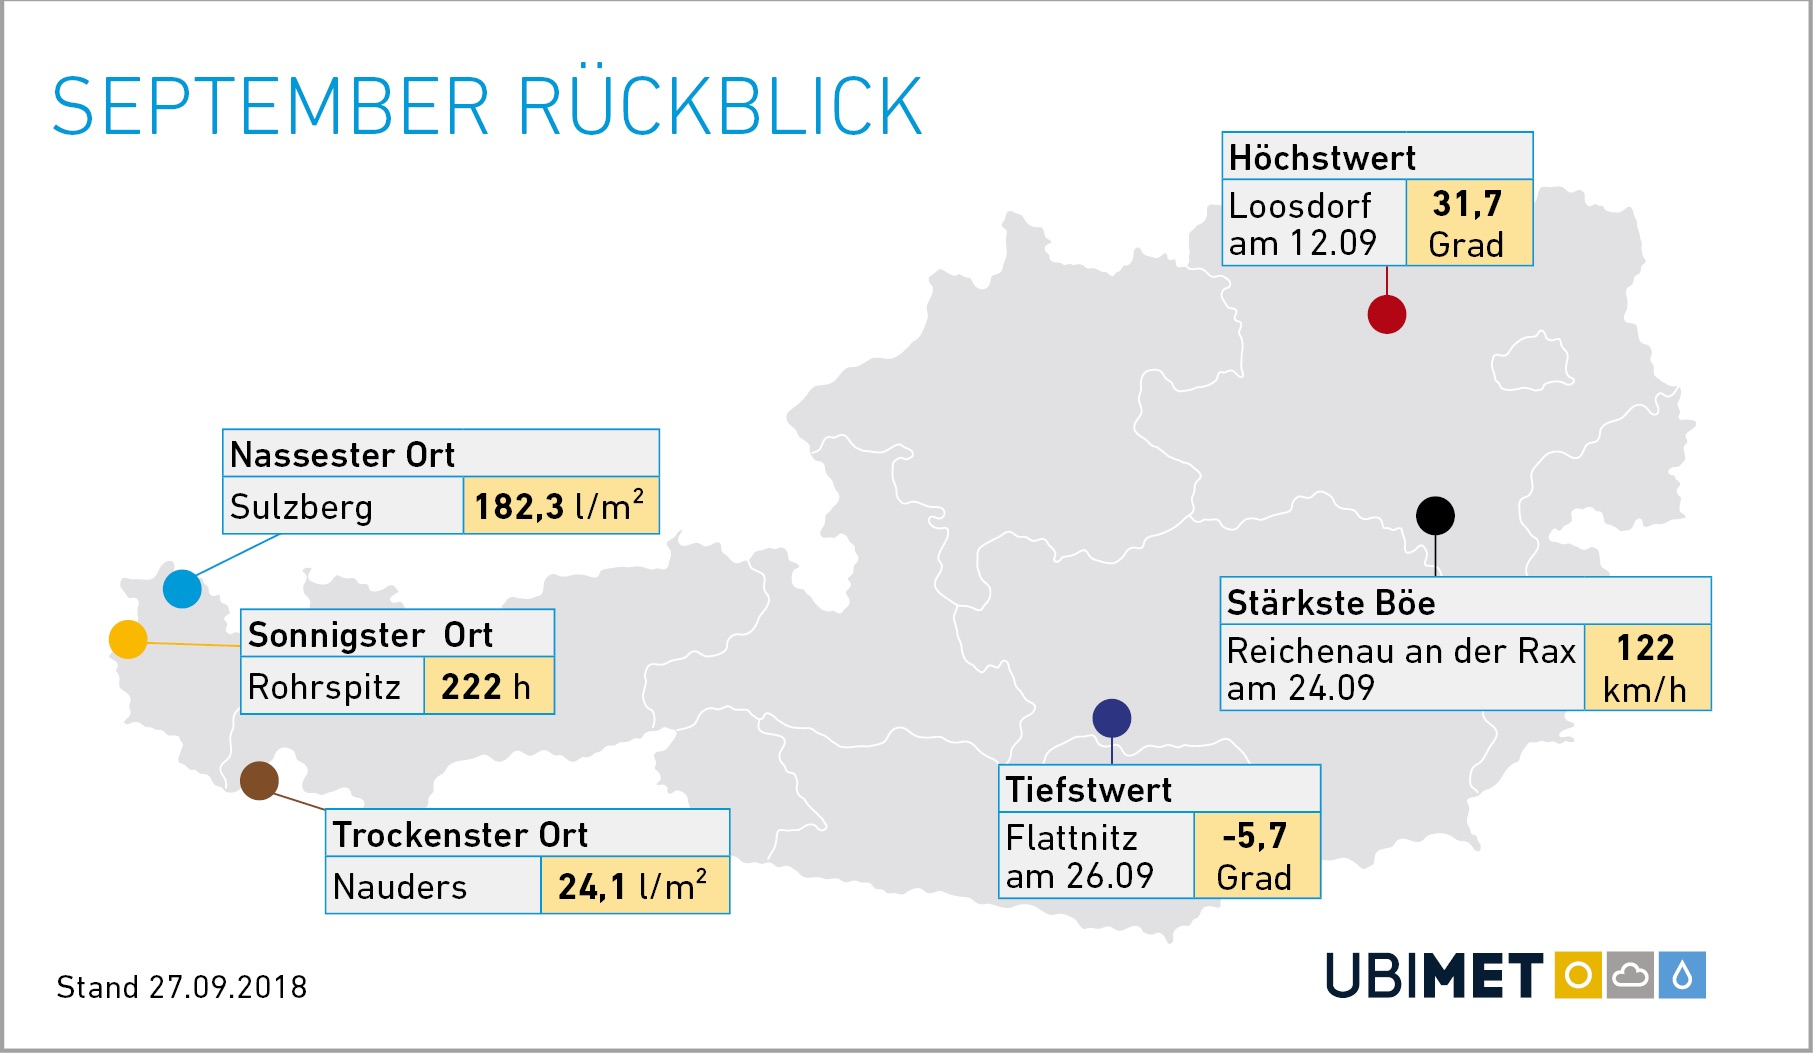 Rückblick September 2018